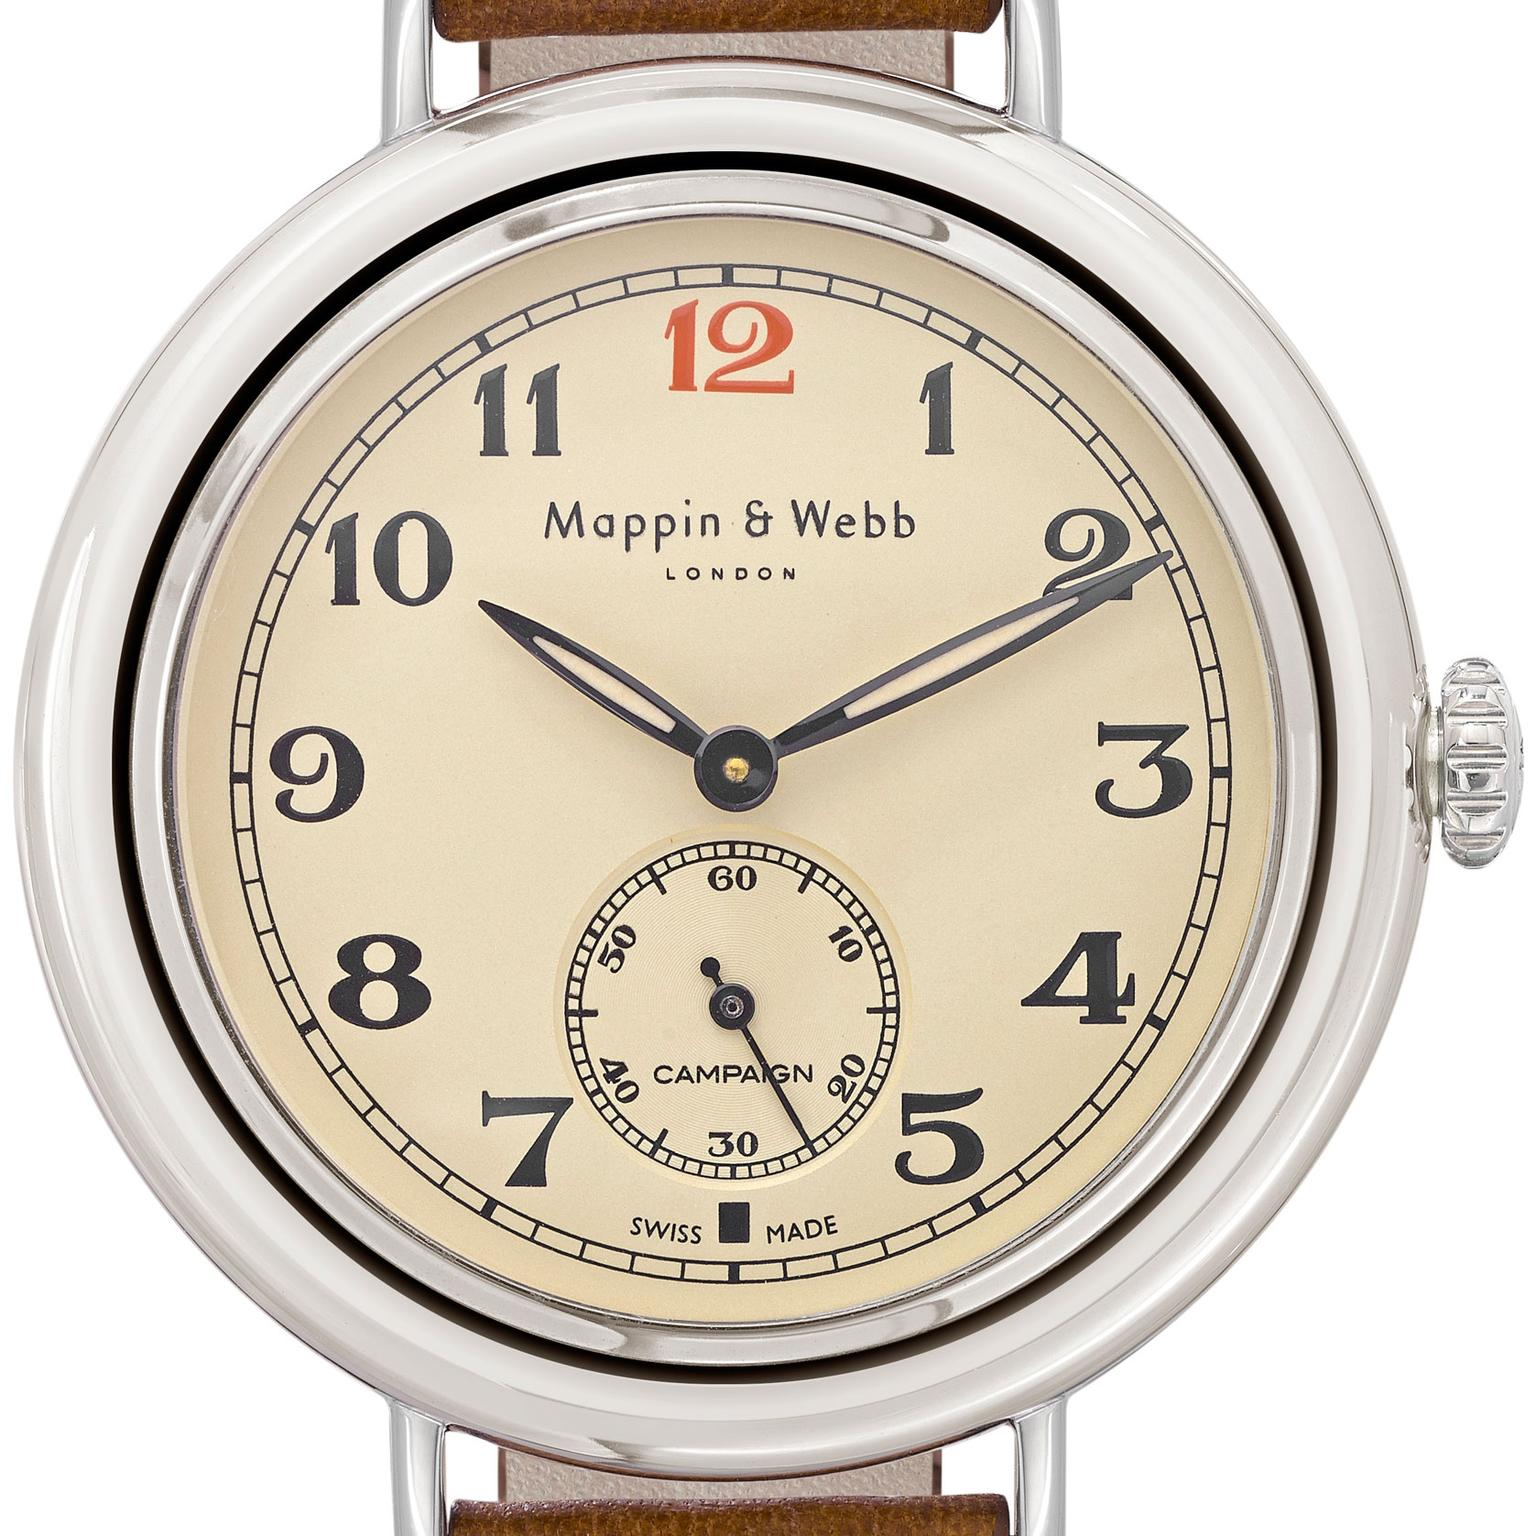 The new Mappin & Webb campaign watch